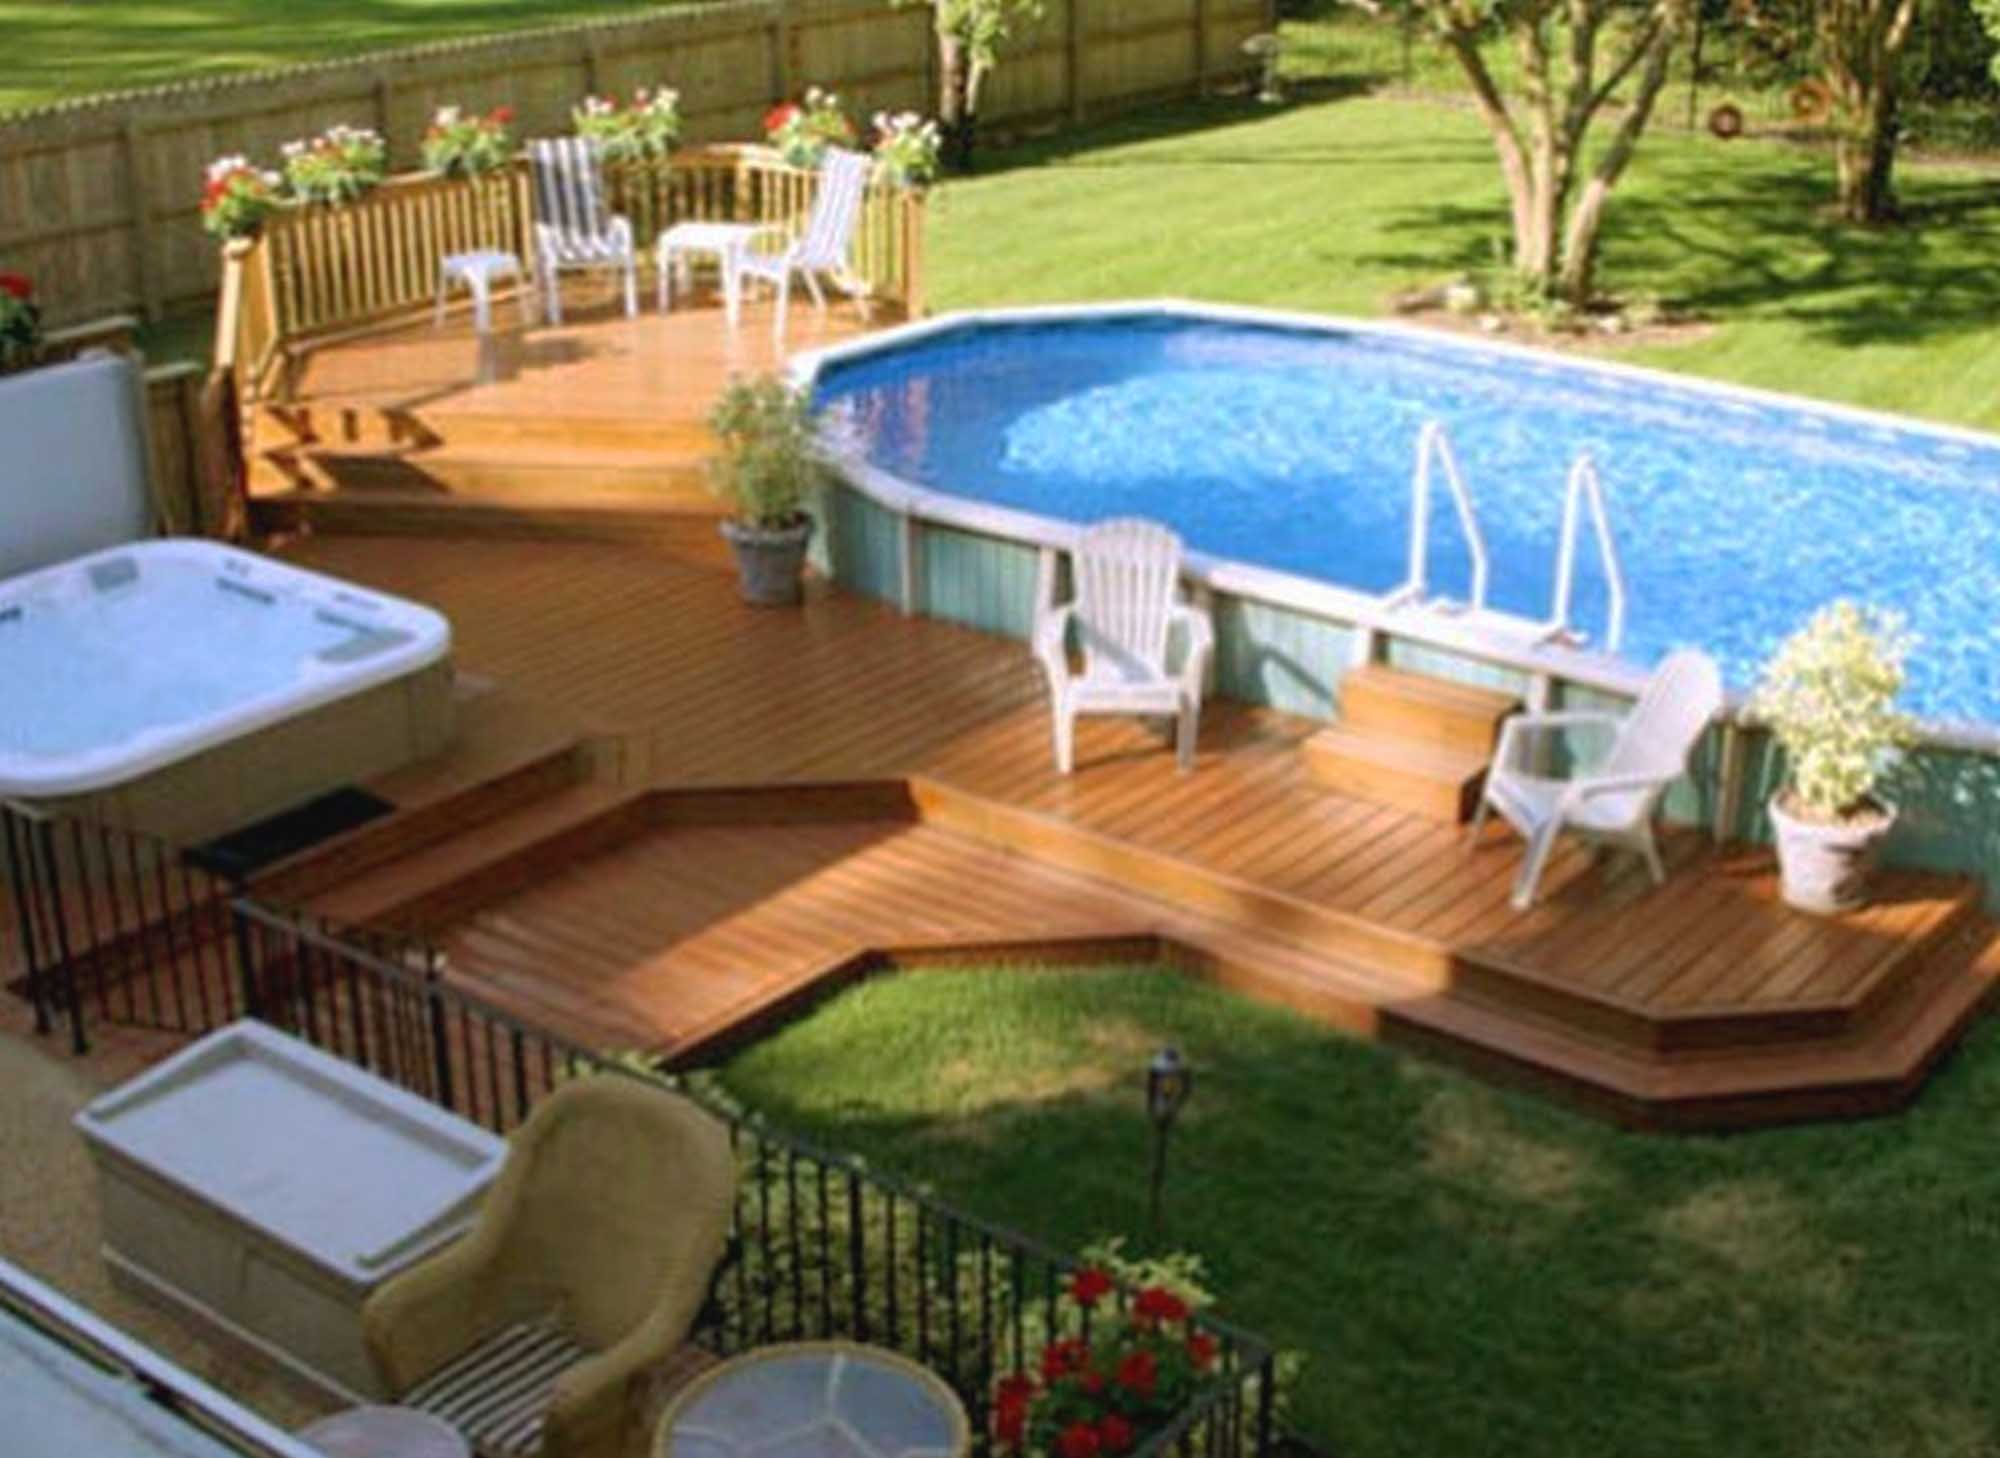 15 Above Ground Pool Ideas That are Unbelievably ... on Patio Ideas Around Pool id=39363